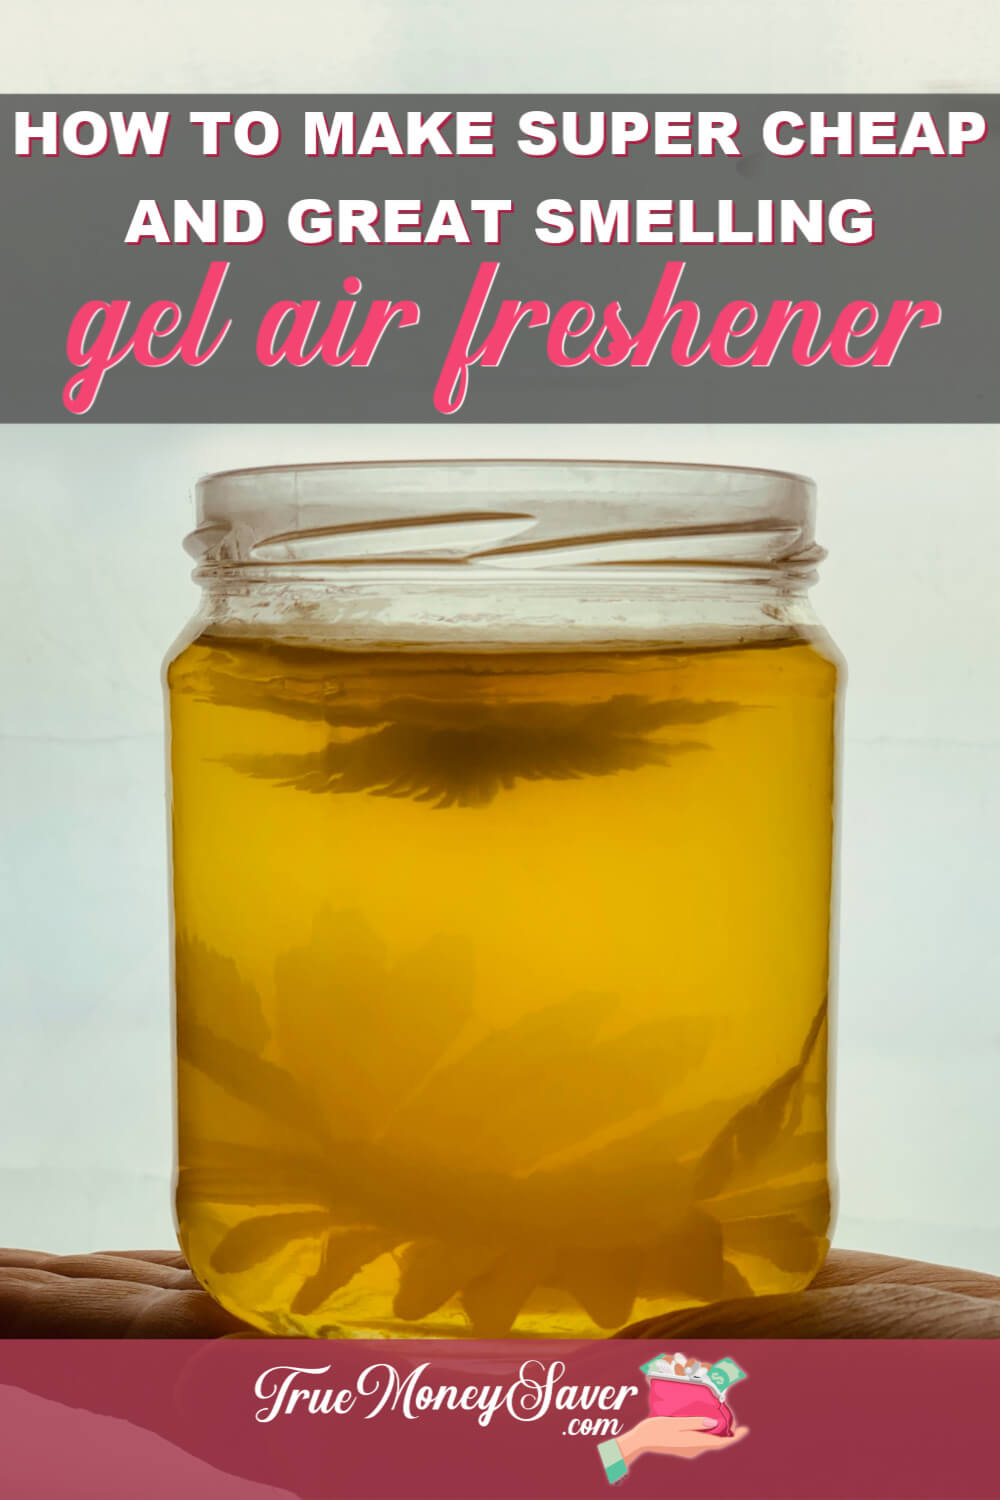 You won\'t believe how simple it is to make these DIY Gel Air Freshener with Essential Oils. In just 5 minutes you can make this homemade gel air freshener to give for gifts! In no time you\'ll have the best air freshener for your house! Start making these today! #truemoneysaver #airfreshener #airfresheners #gelairfreshener #gelairfresheners #airfreshenerfordays #airfreshenerbest #diyairfreshener #diyairfresheners #diyfreshener #diy #moneysavingdiy #diygifts #diygift